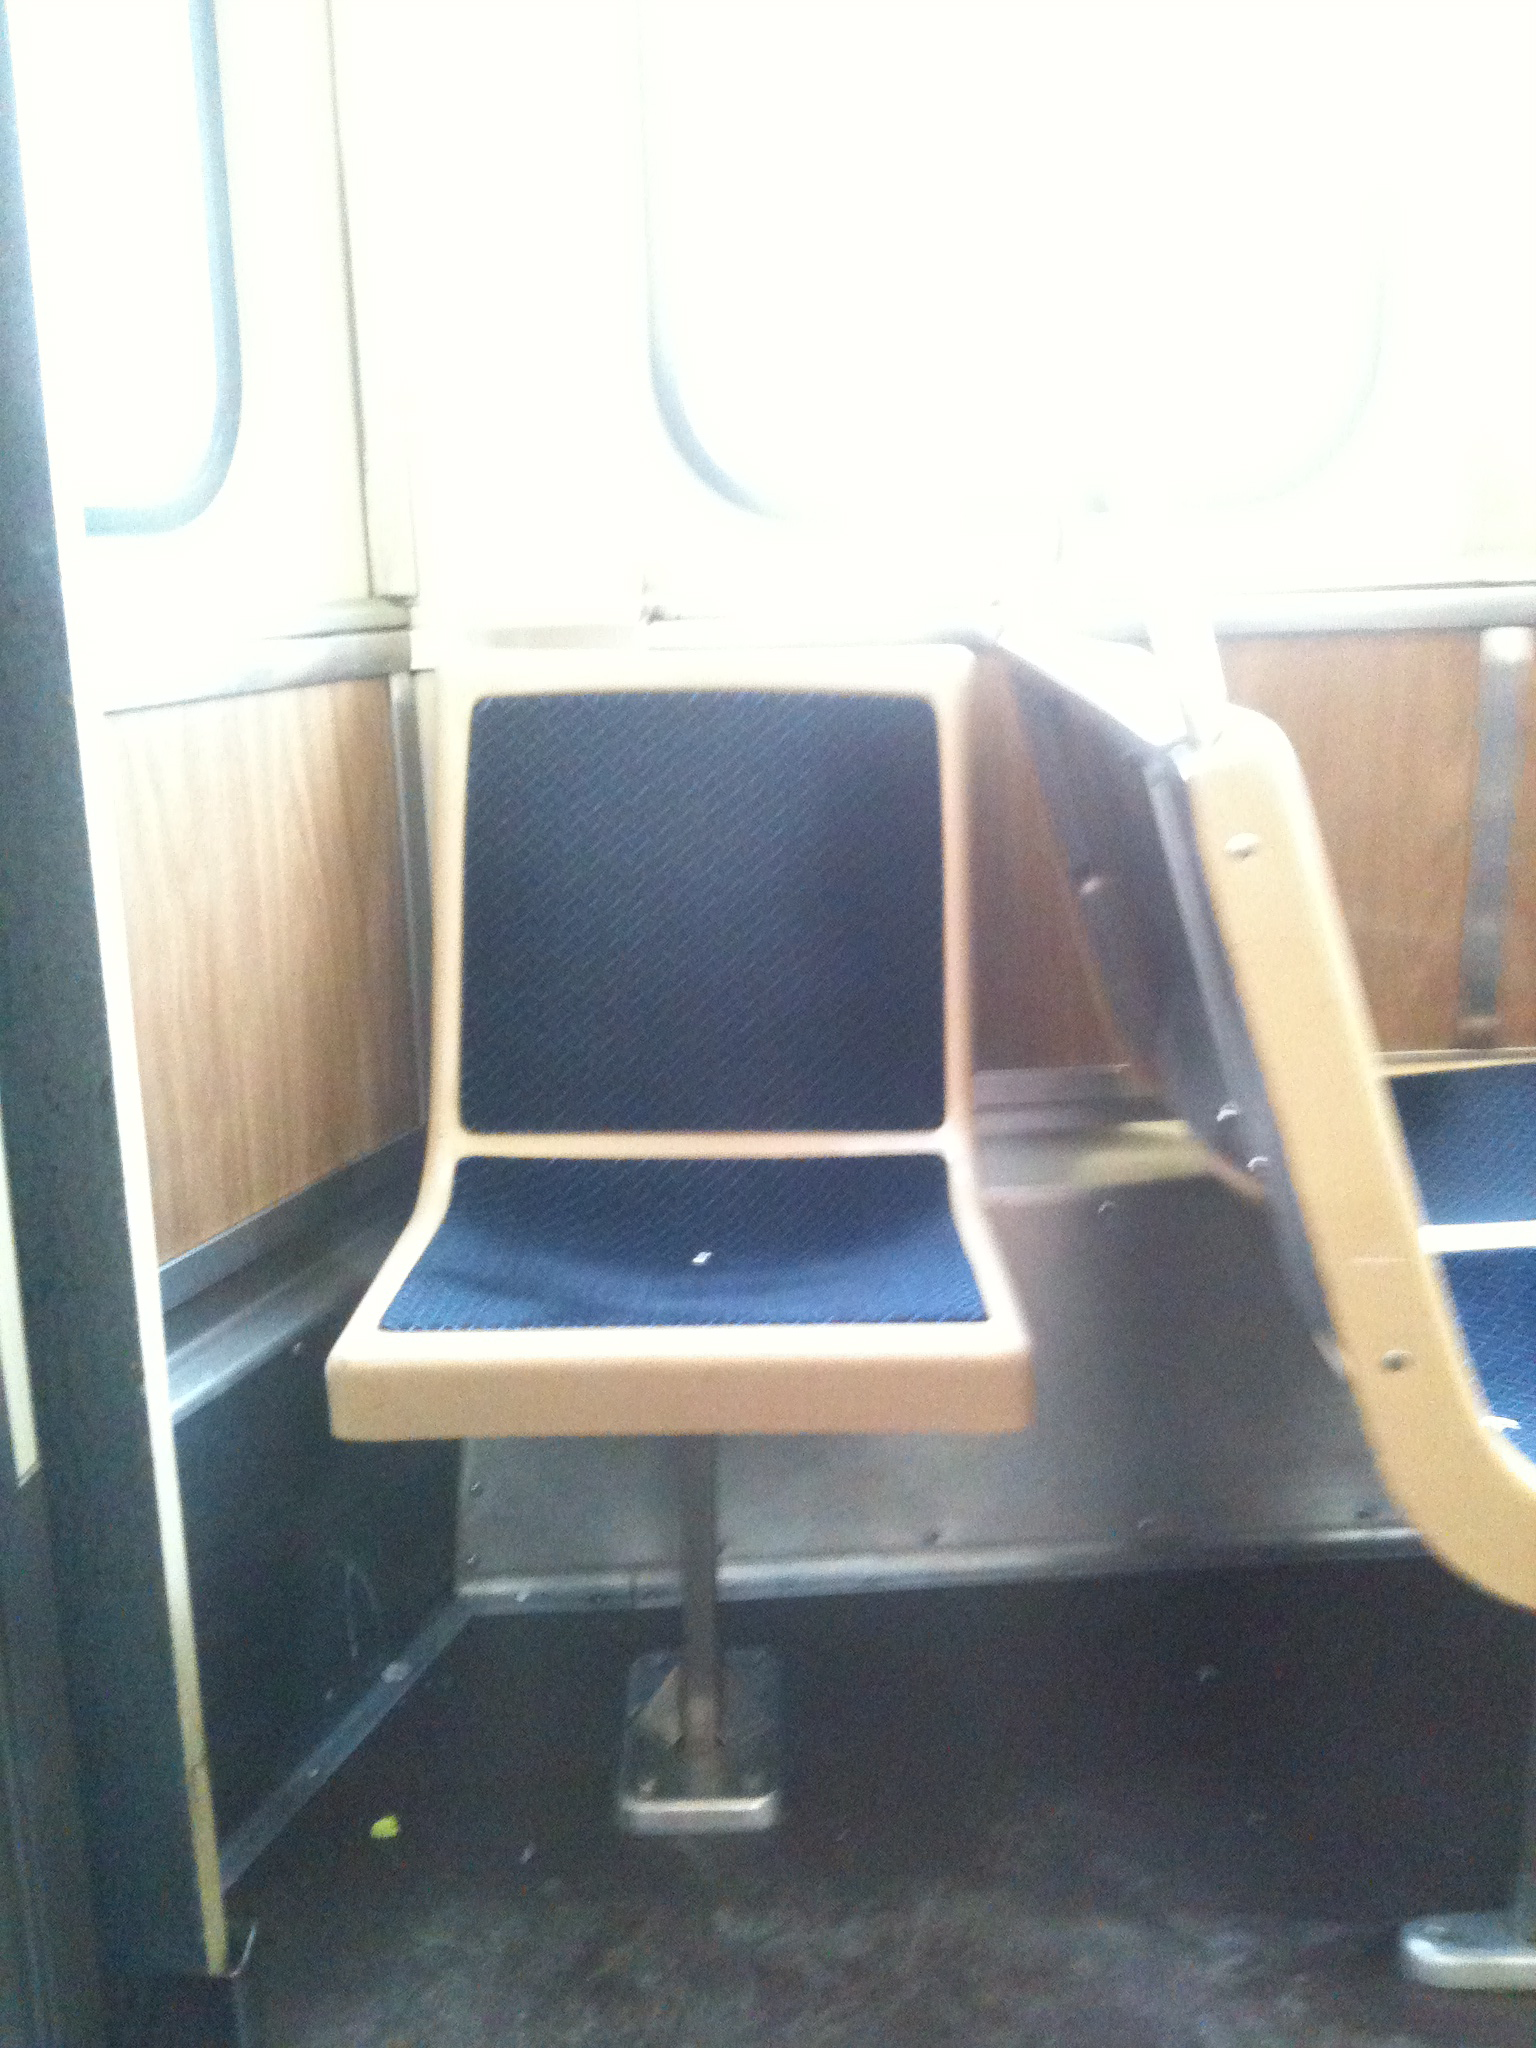 Lonely seat on CTA Blue Line, January 2012